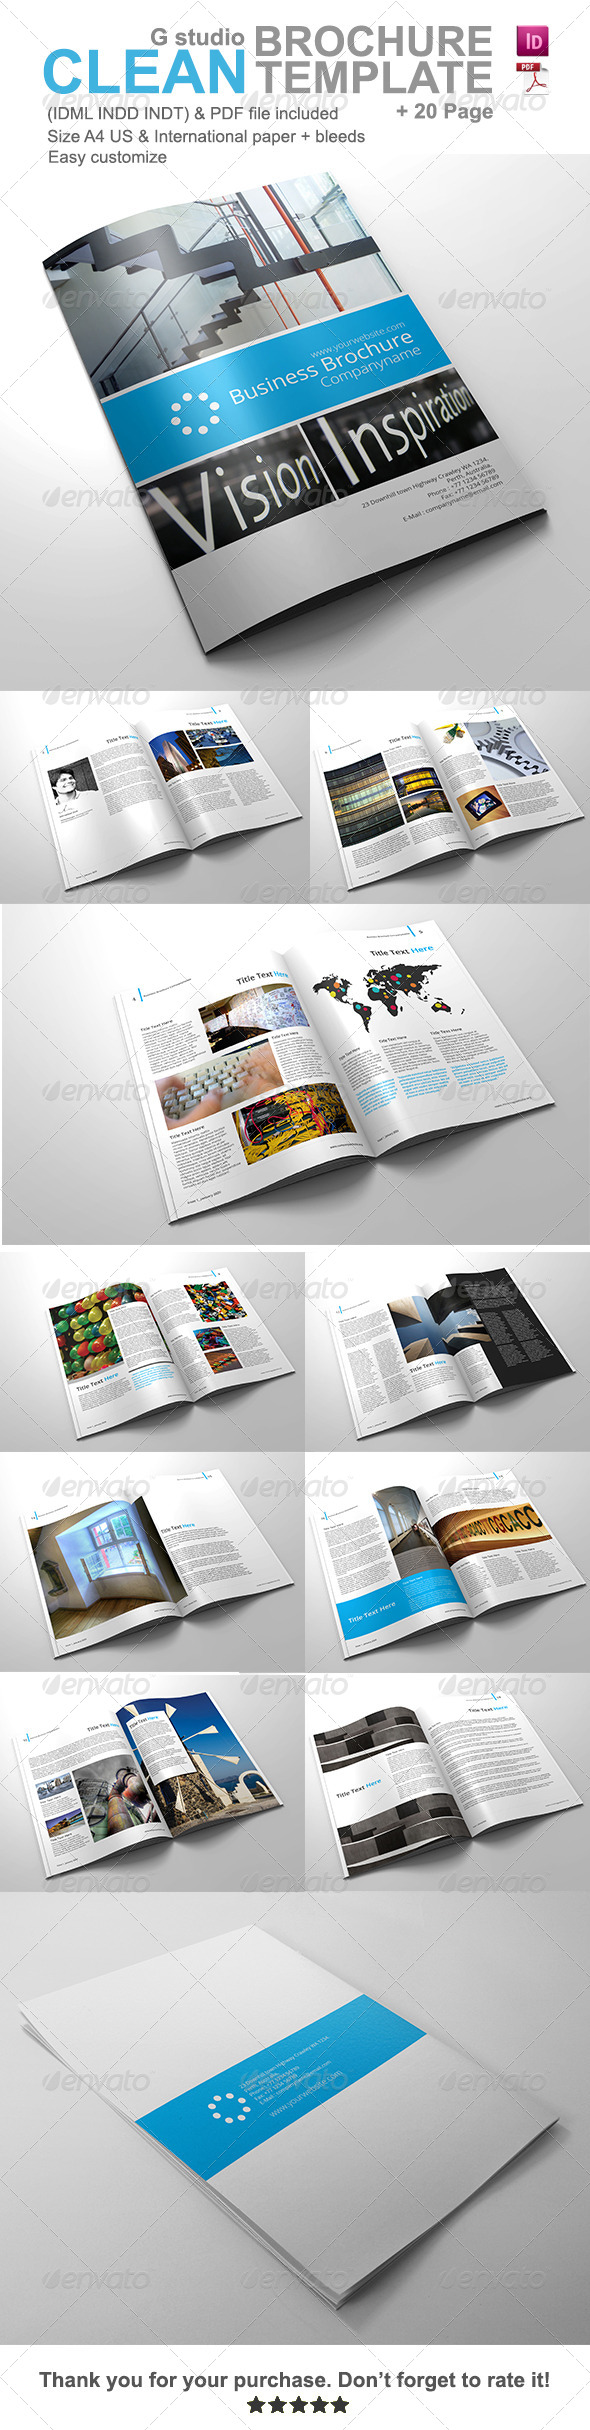 Gstudio Clean Brochure Template V2